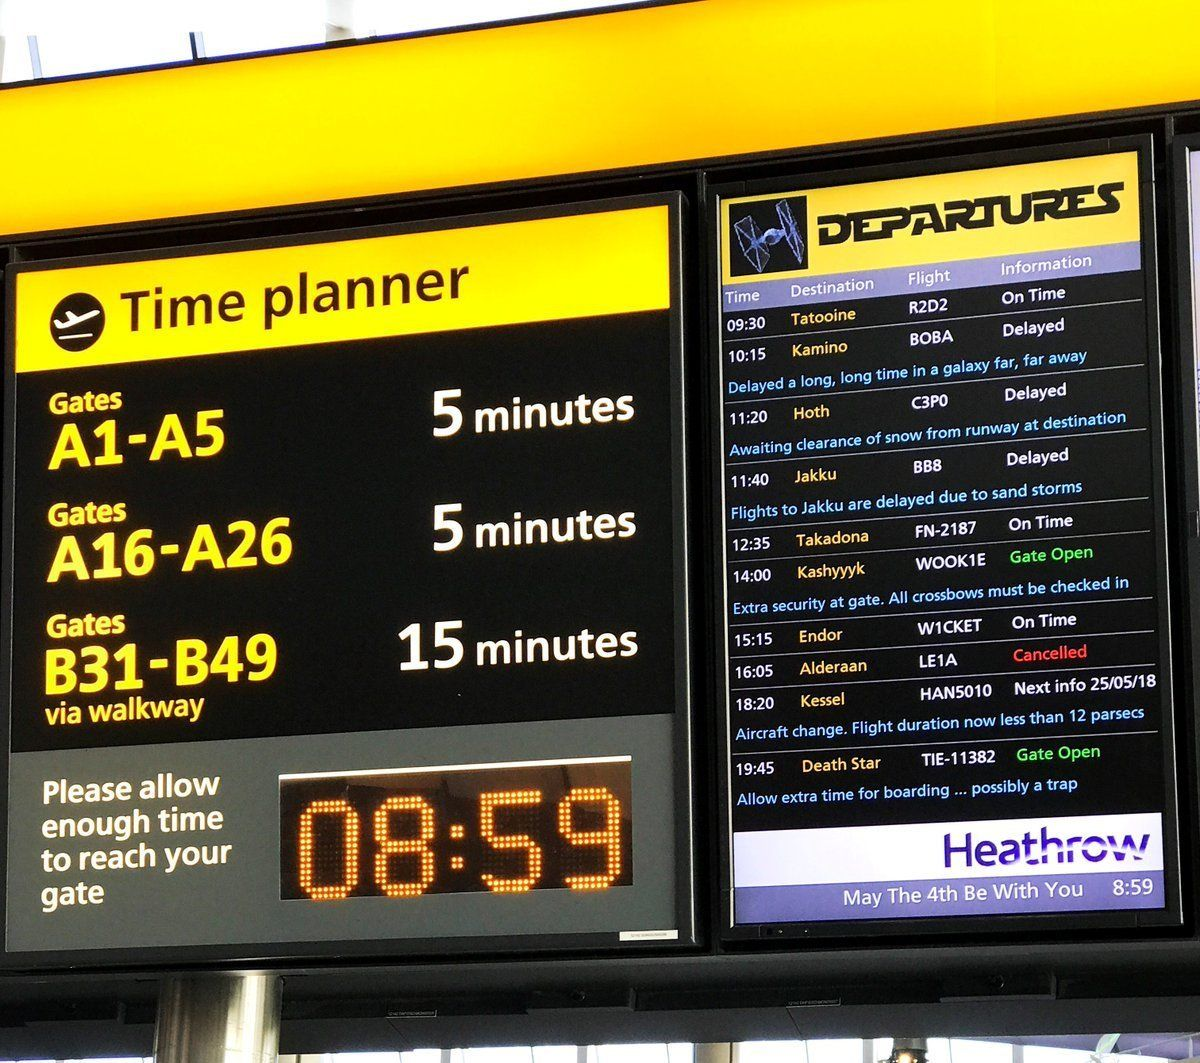 Heathrow Airport Officially Wins 'Star Wars' Day With Their #MayTheFourthBeWithYou Efforts